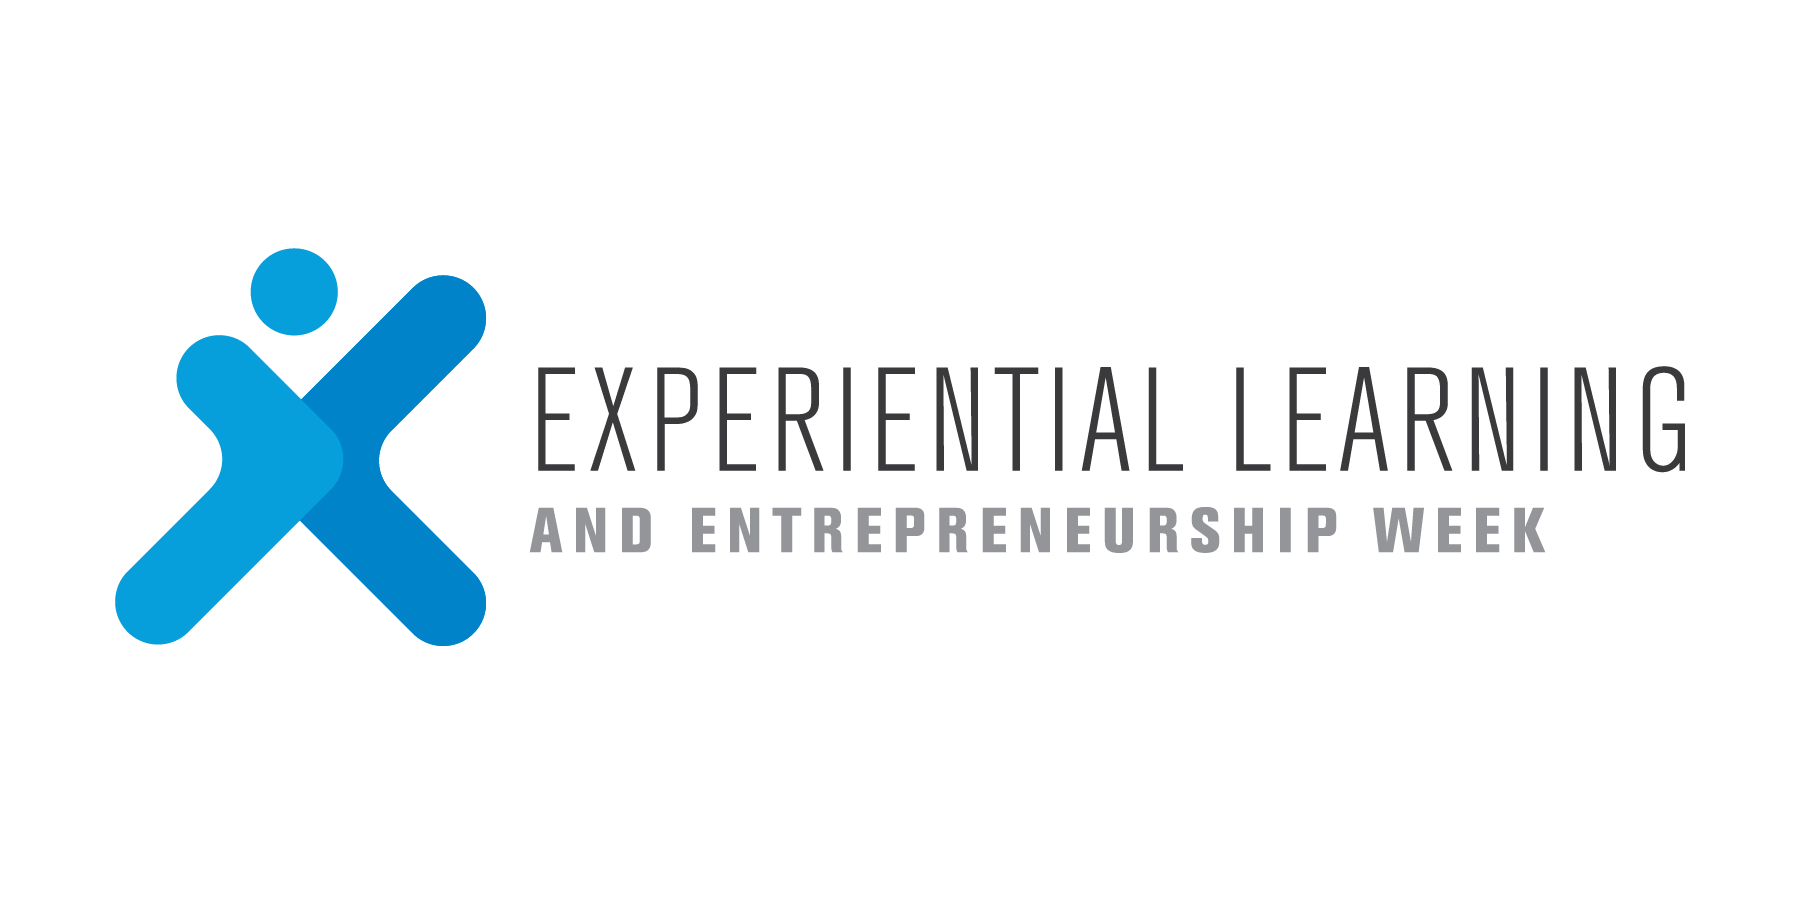 Experiential Learning and Entrepreneurship Week